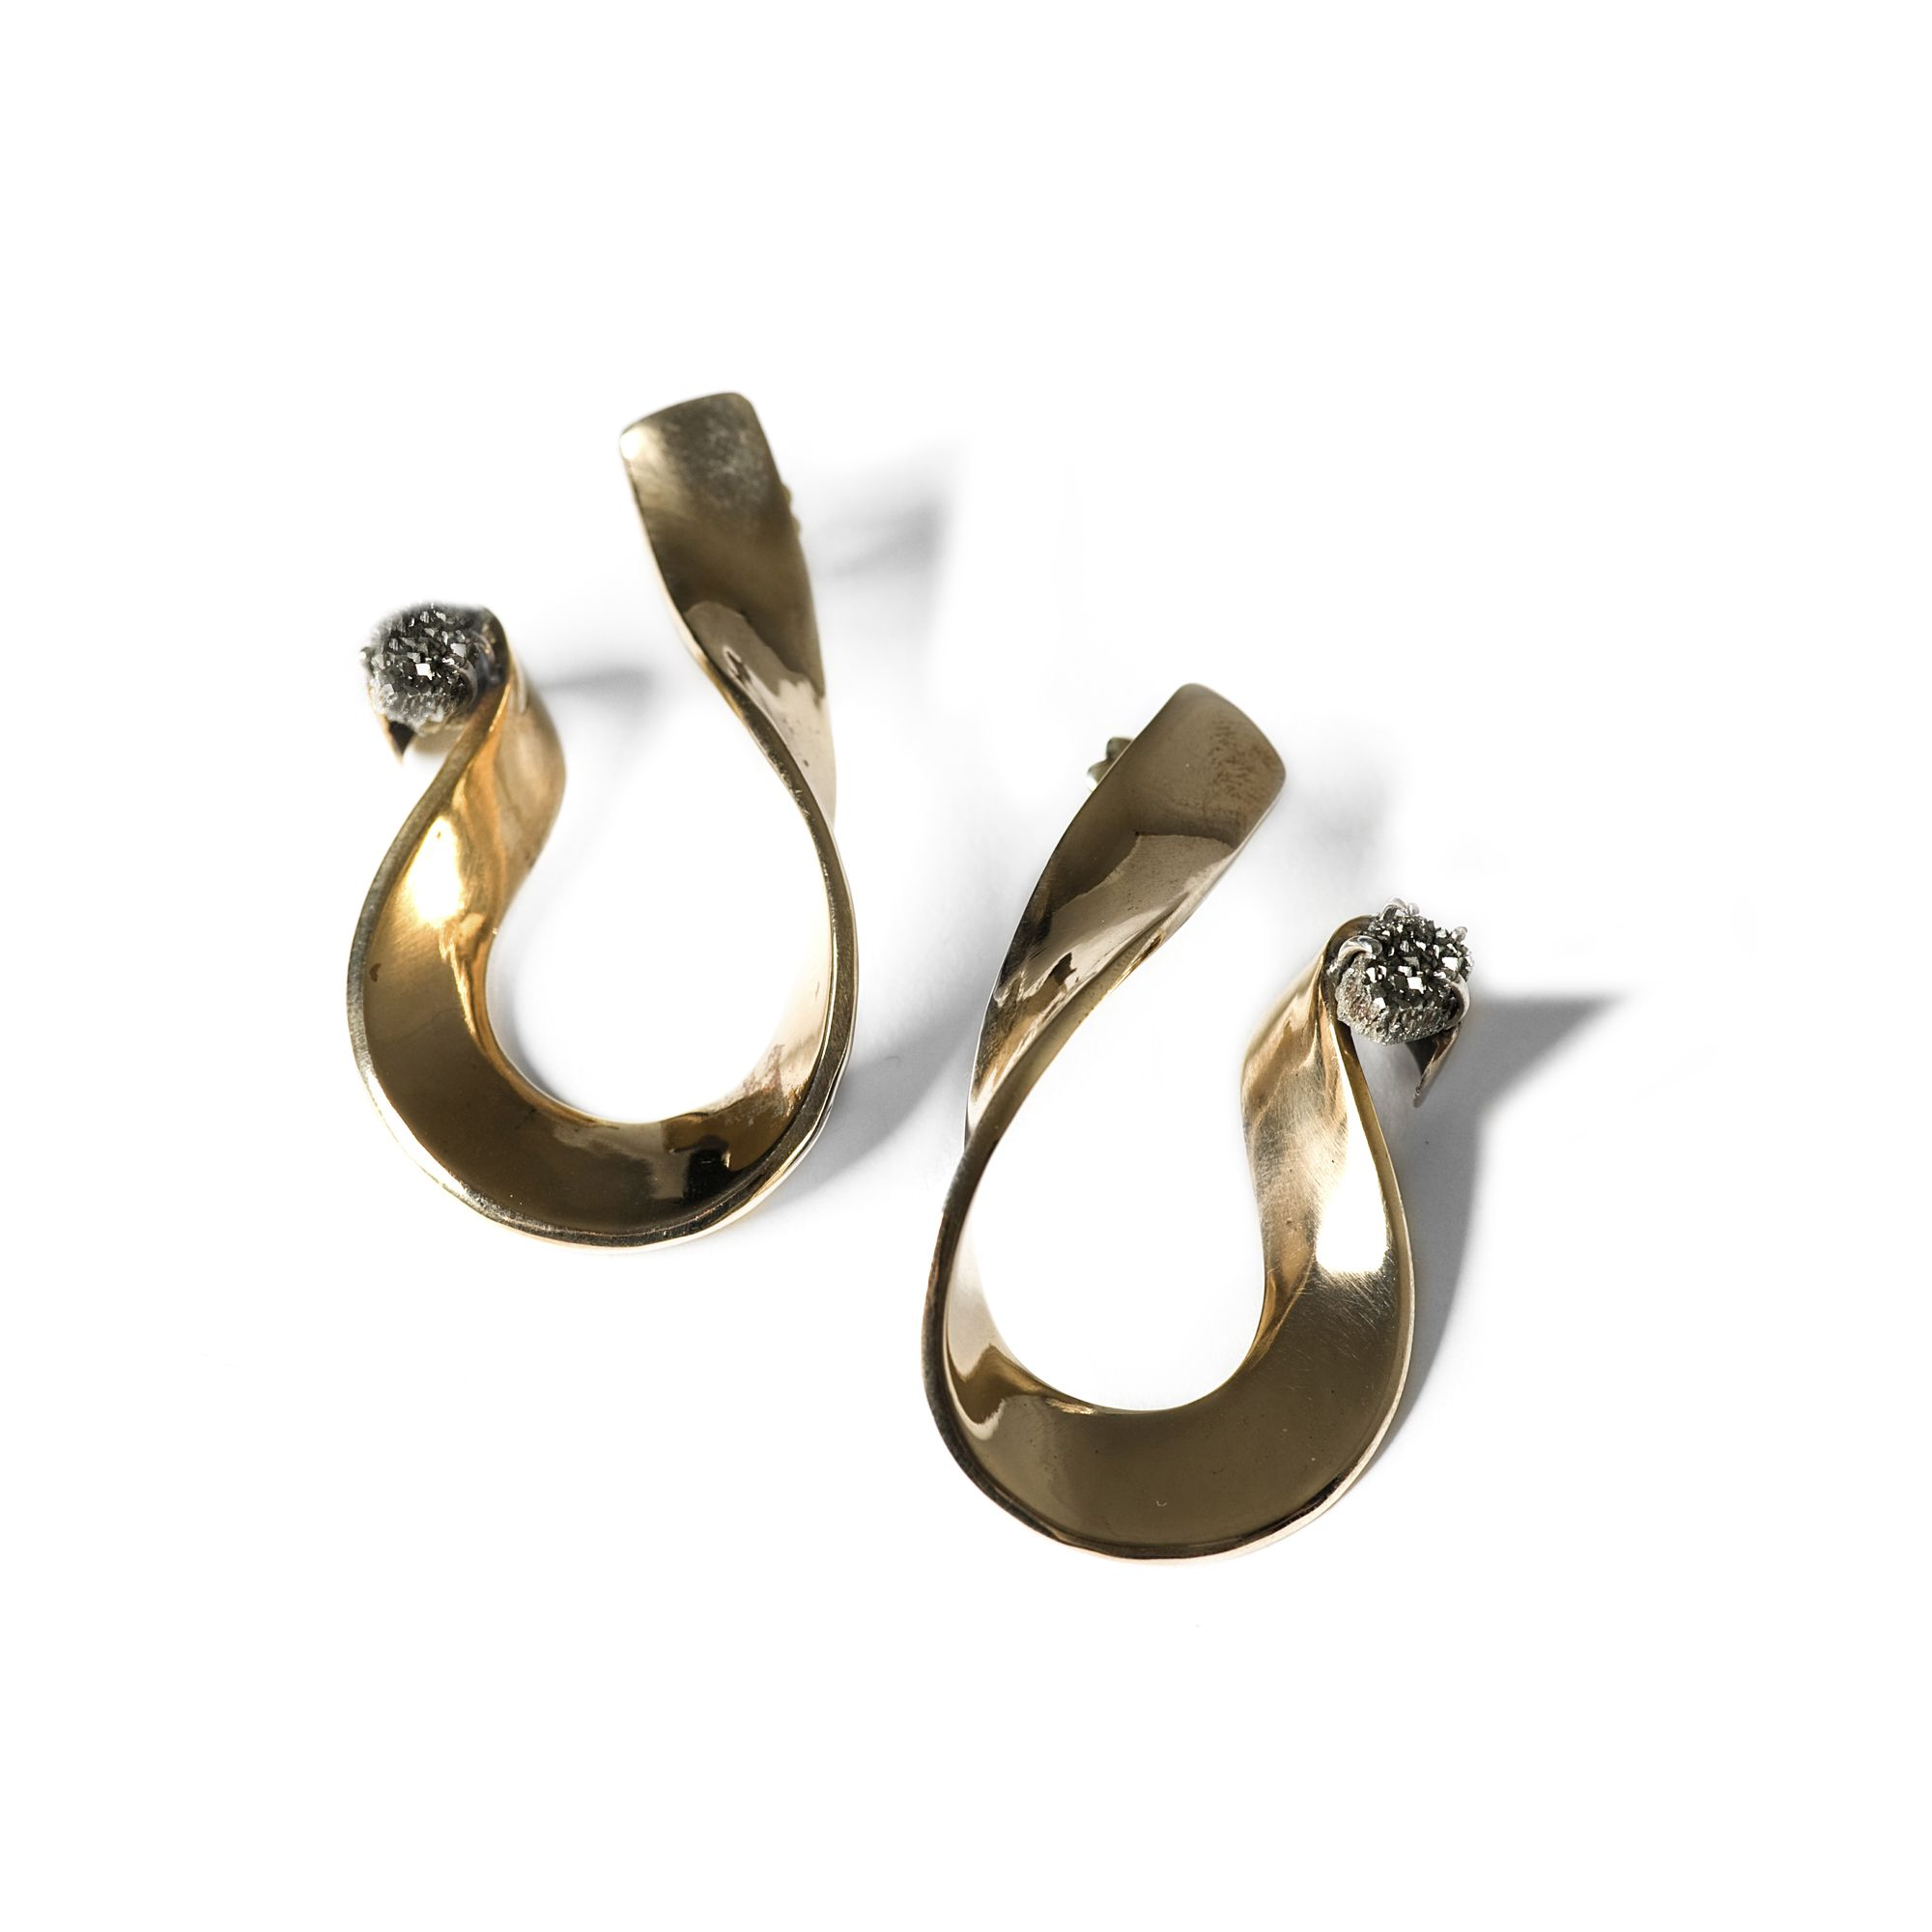 'Nastri' earrings with drusa Earrings in bronze and mineral